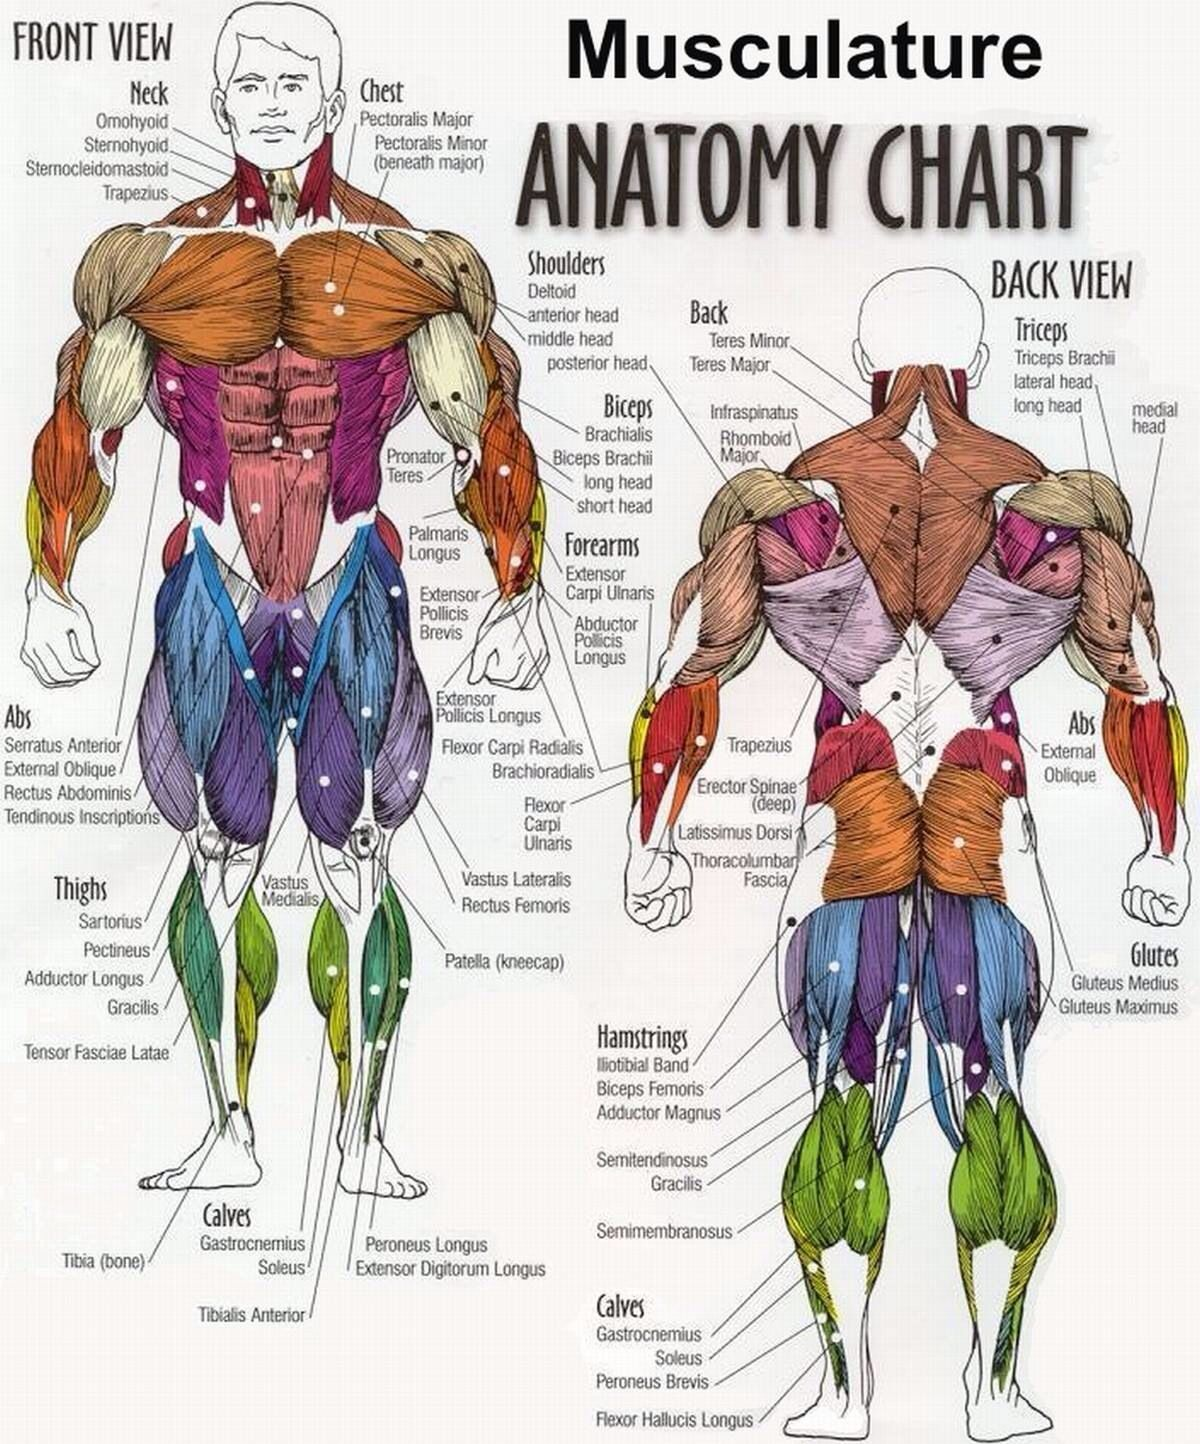 medium resolution of body building anatomy chart from gym posters